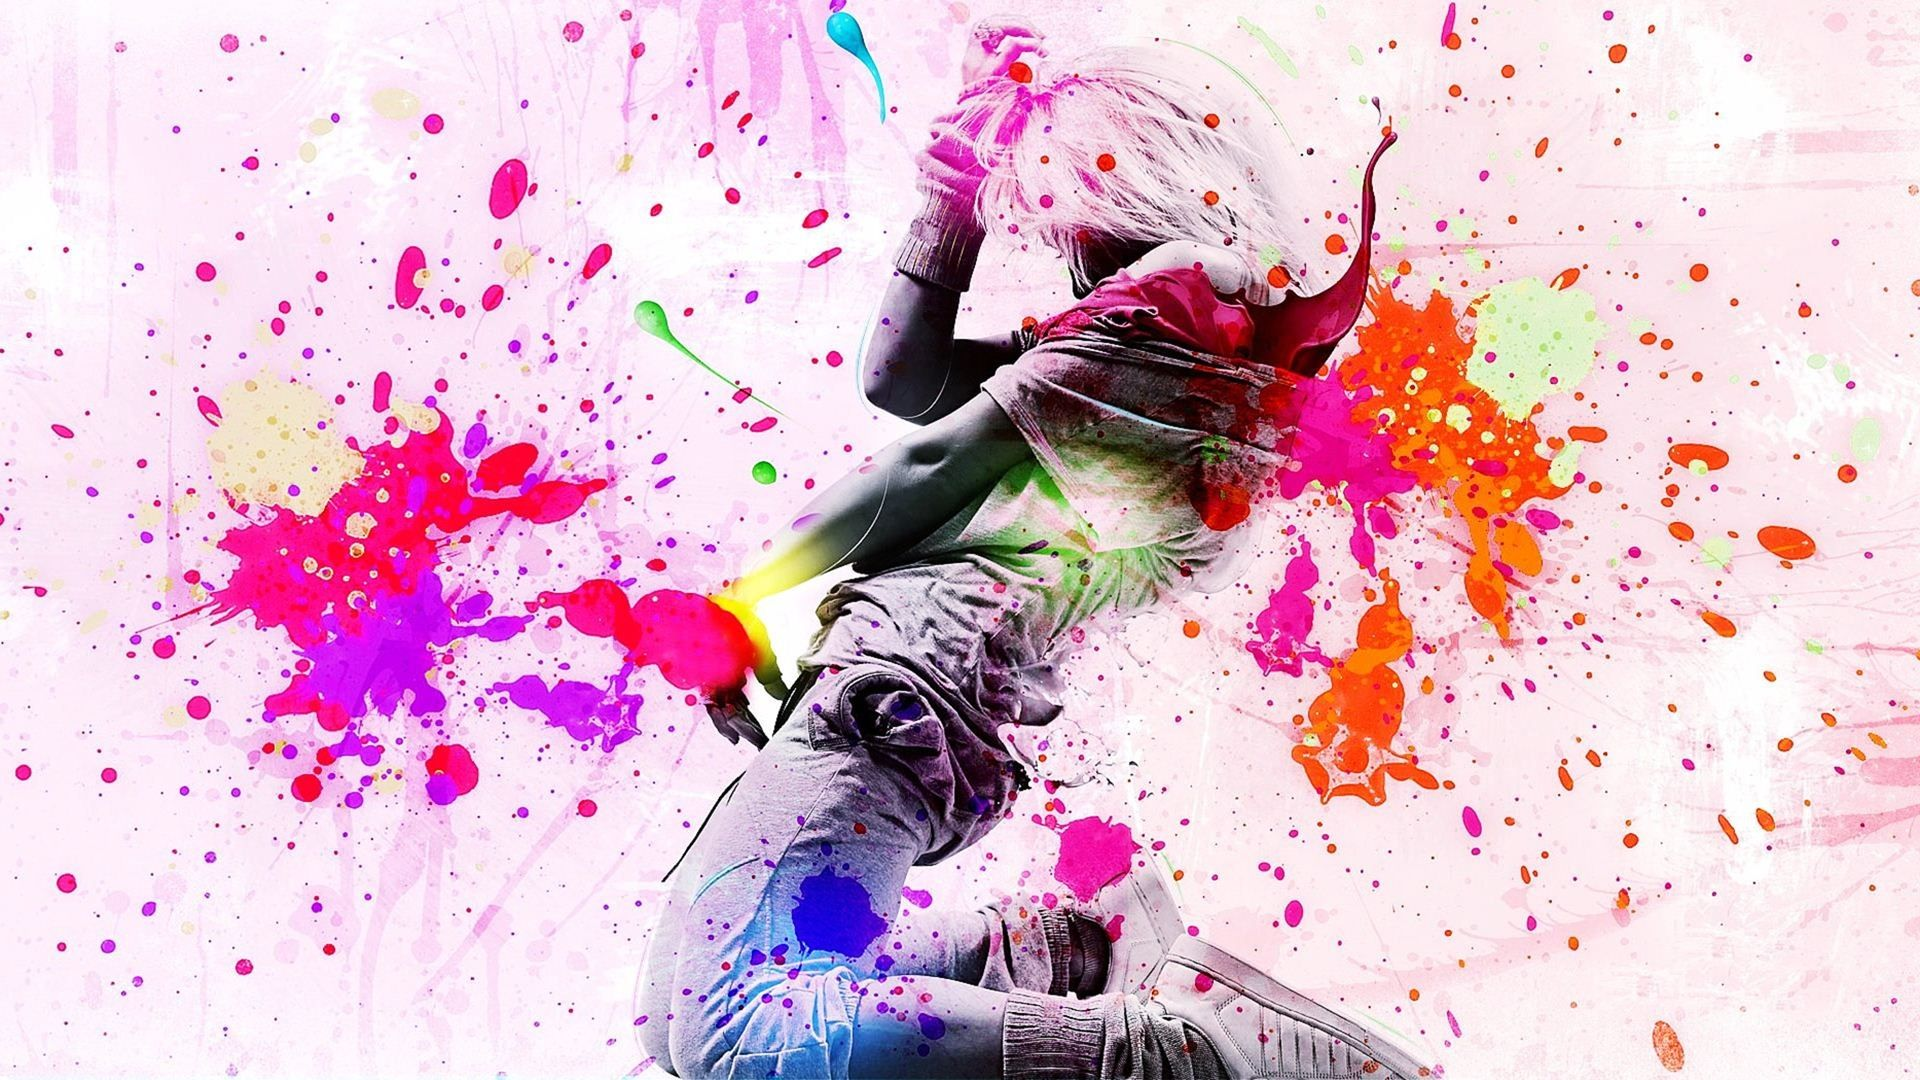 Happy Holi Wallpaper For Facebook